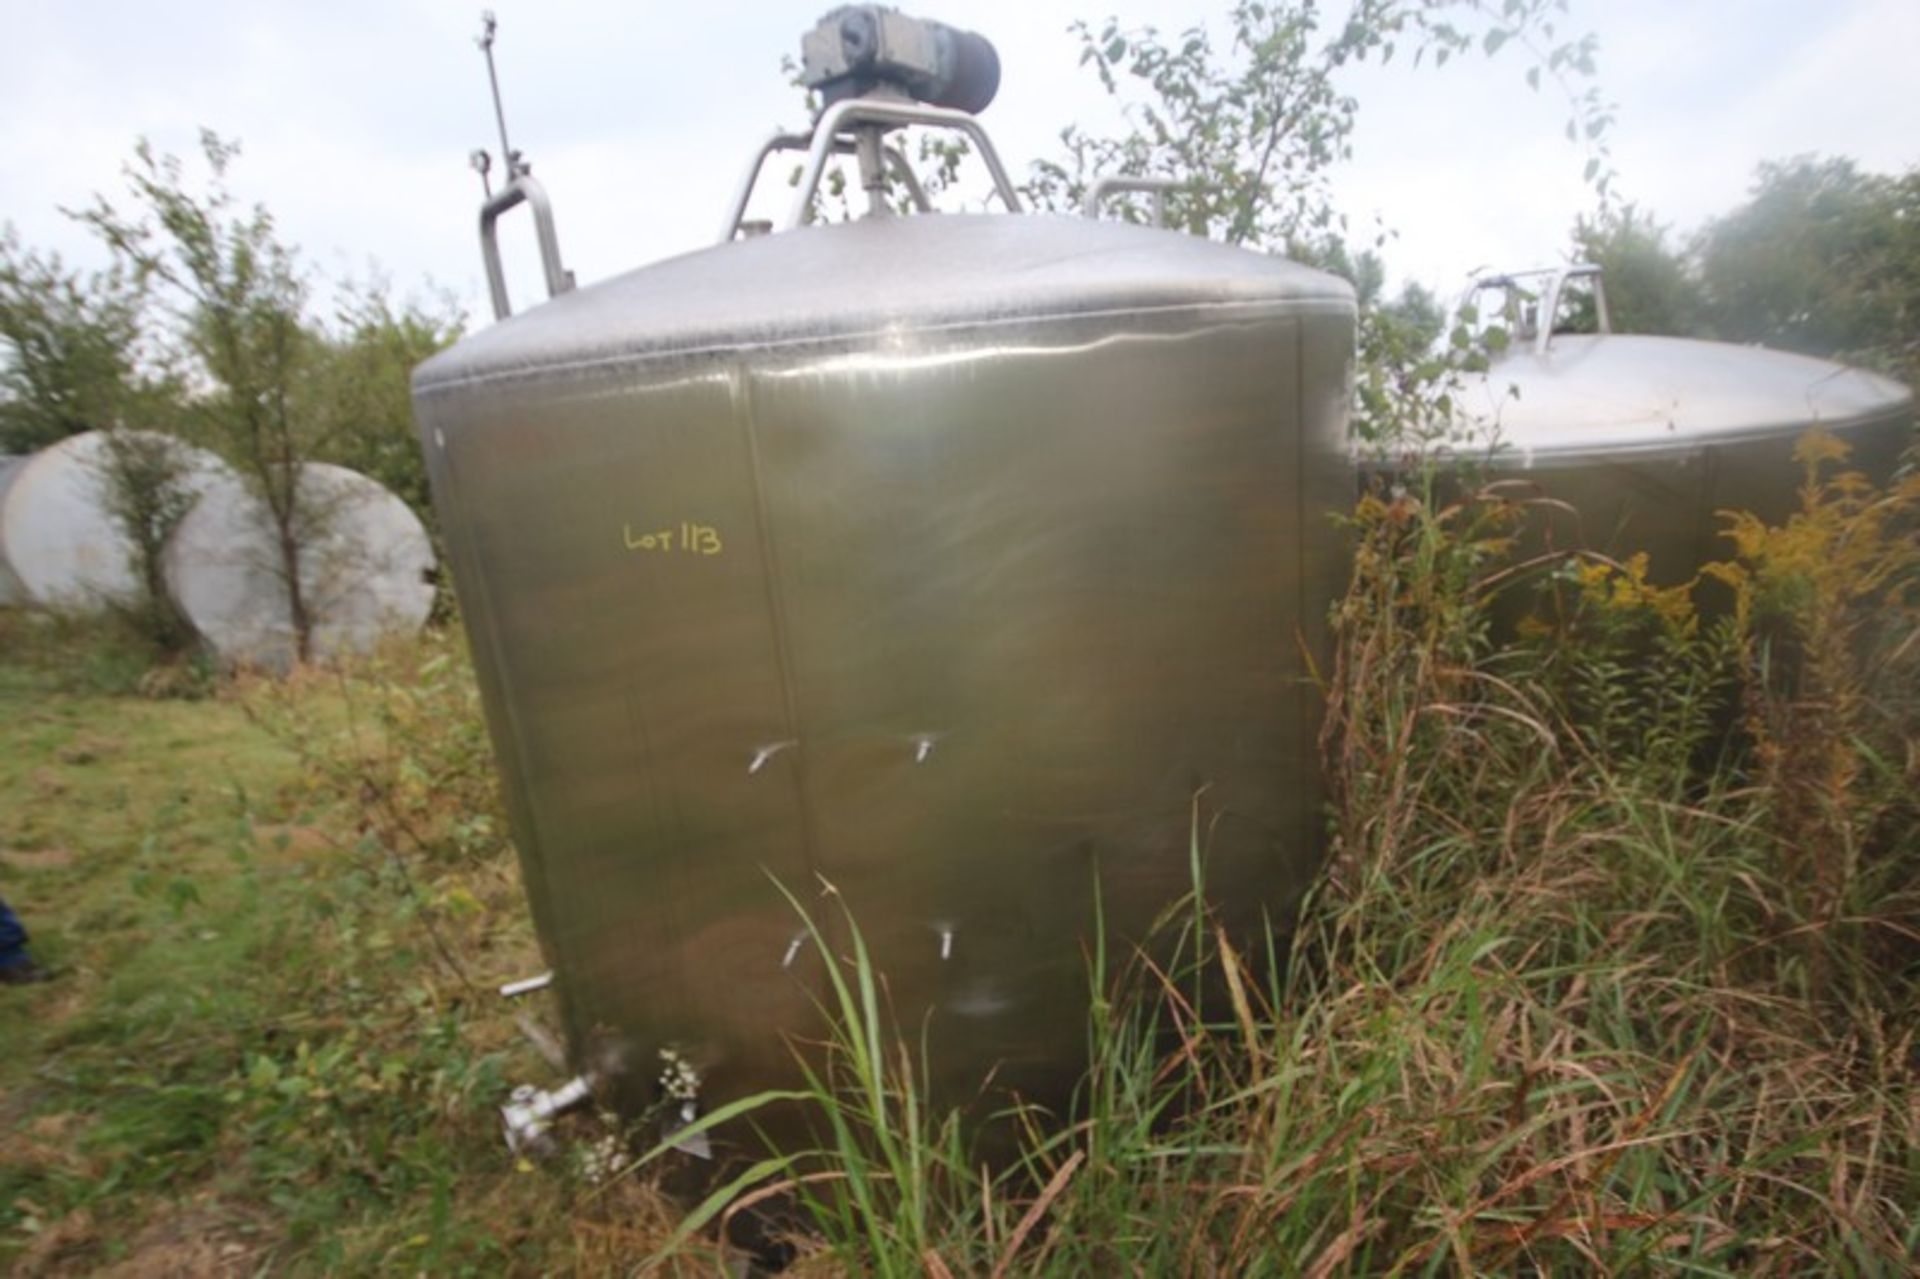 """Aprox. 2,300 Gal. S/S Processor, Tank Dims.: Aprox. 8' Diameter x 76"""" Straight Side, Dish Top, - Image 2 of 6"""